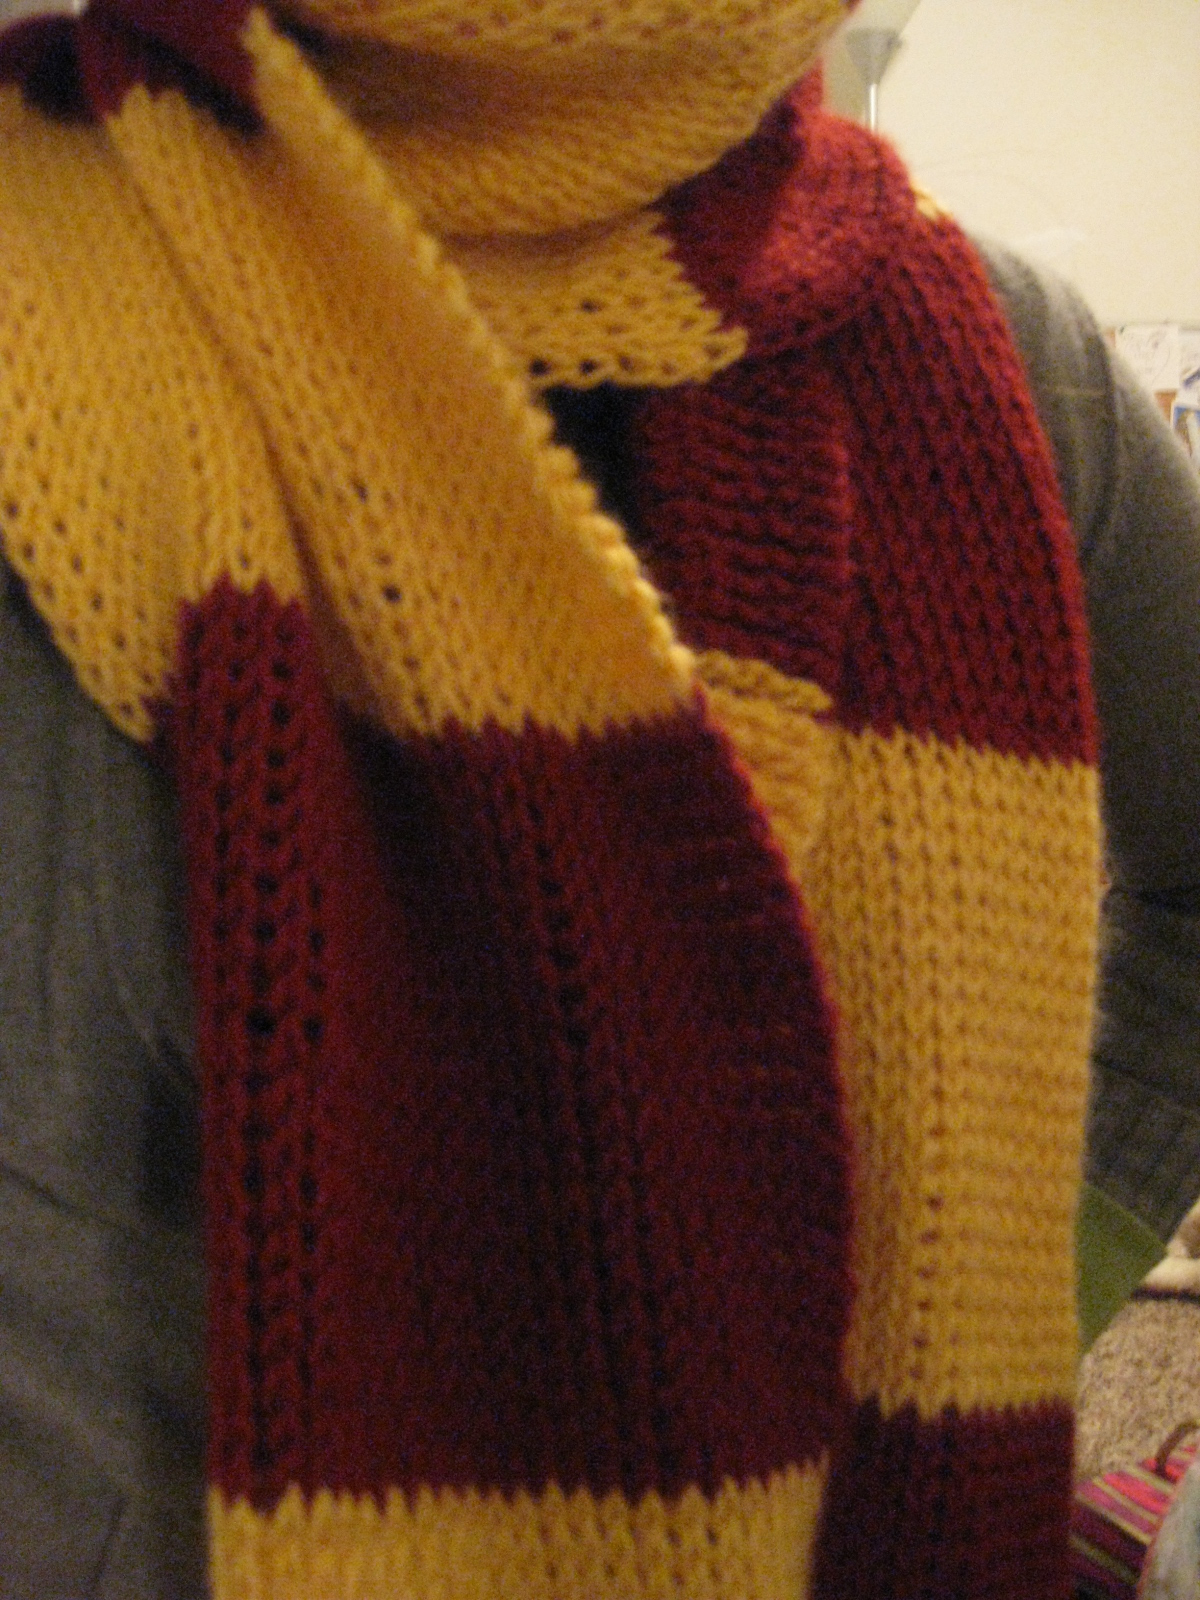 Harry Potter Scarf Knitting Pattern : Live. Love. Laugh.: Harry Potter Scarf!